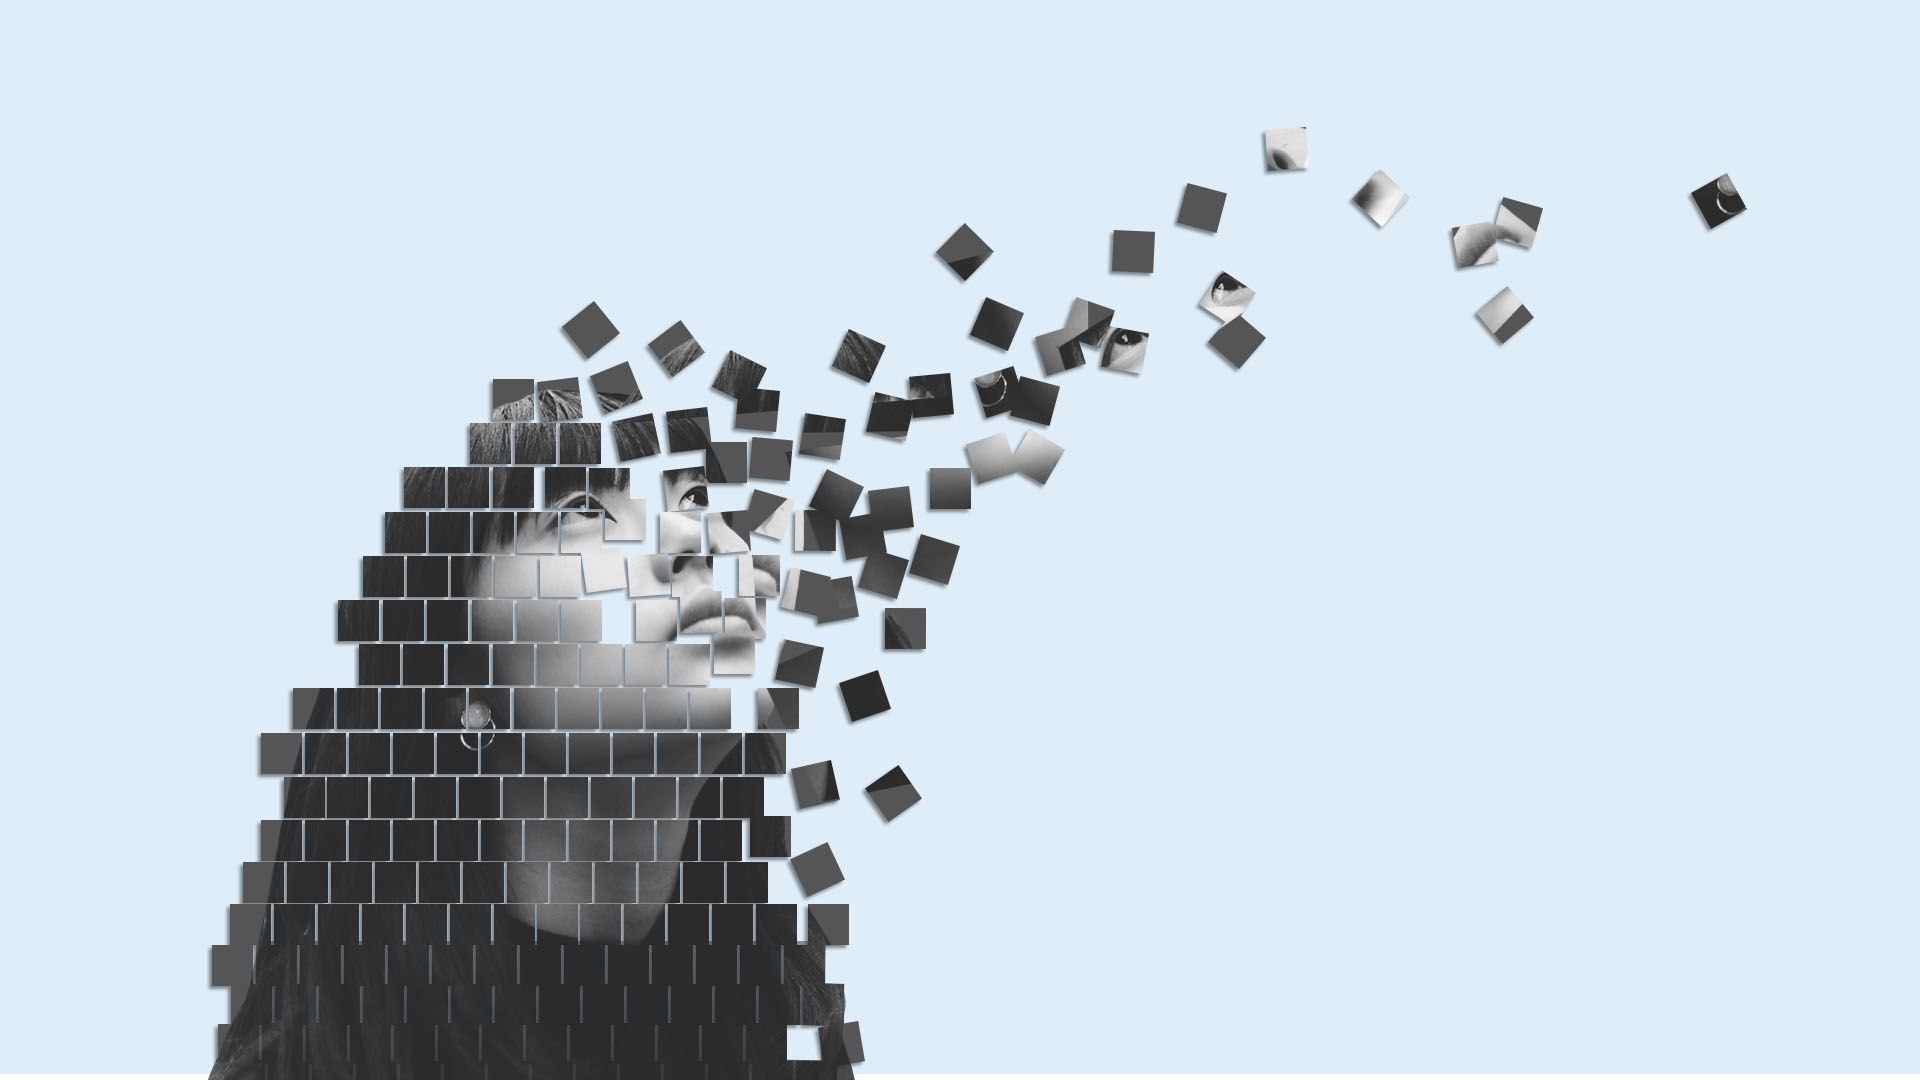 A pixelated person disintegrating.